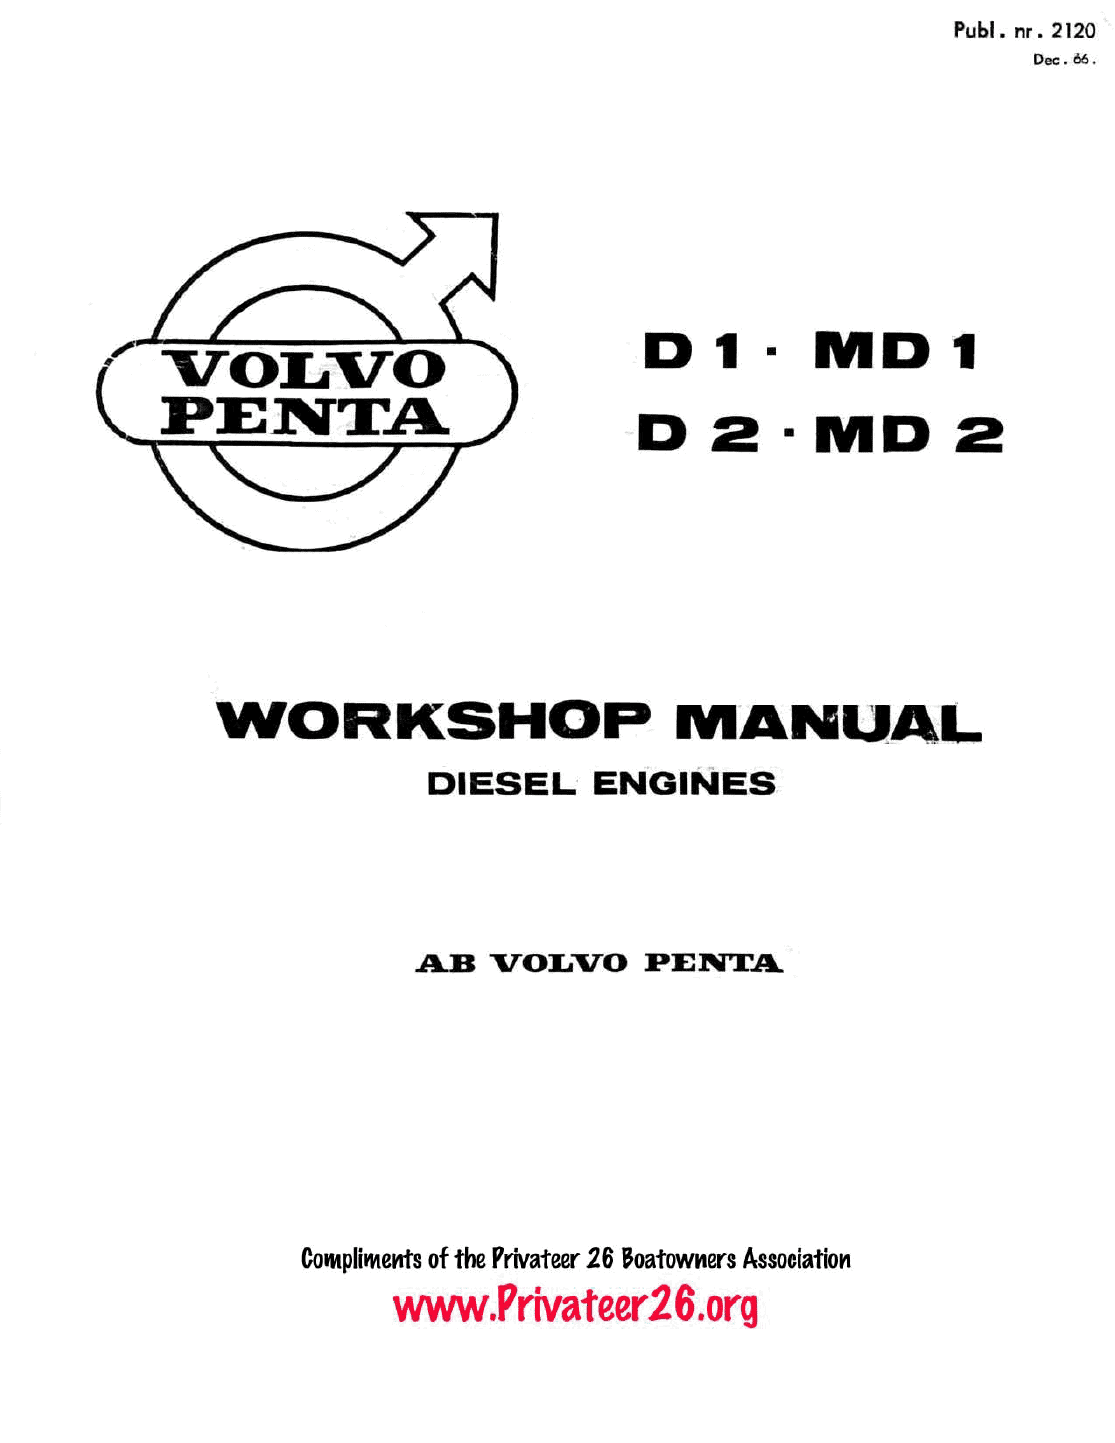 volvo penta md1 gearbox manual browse manual guides u2022 rh trufflefries co